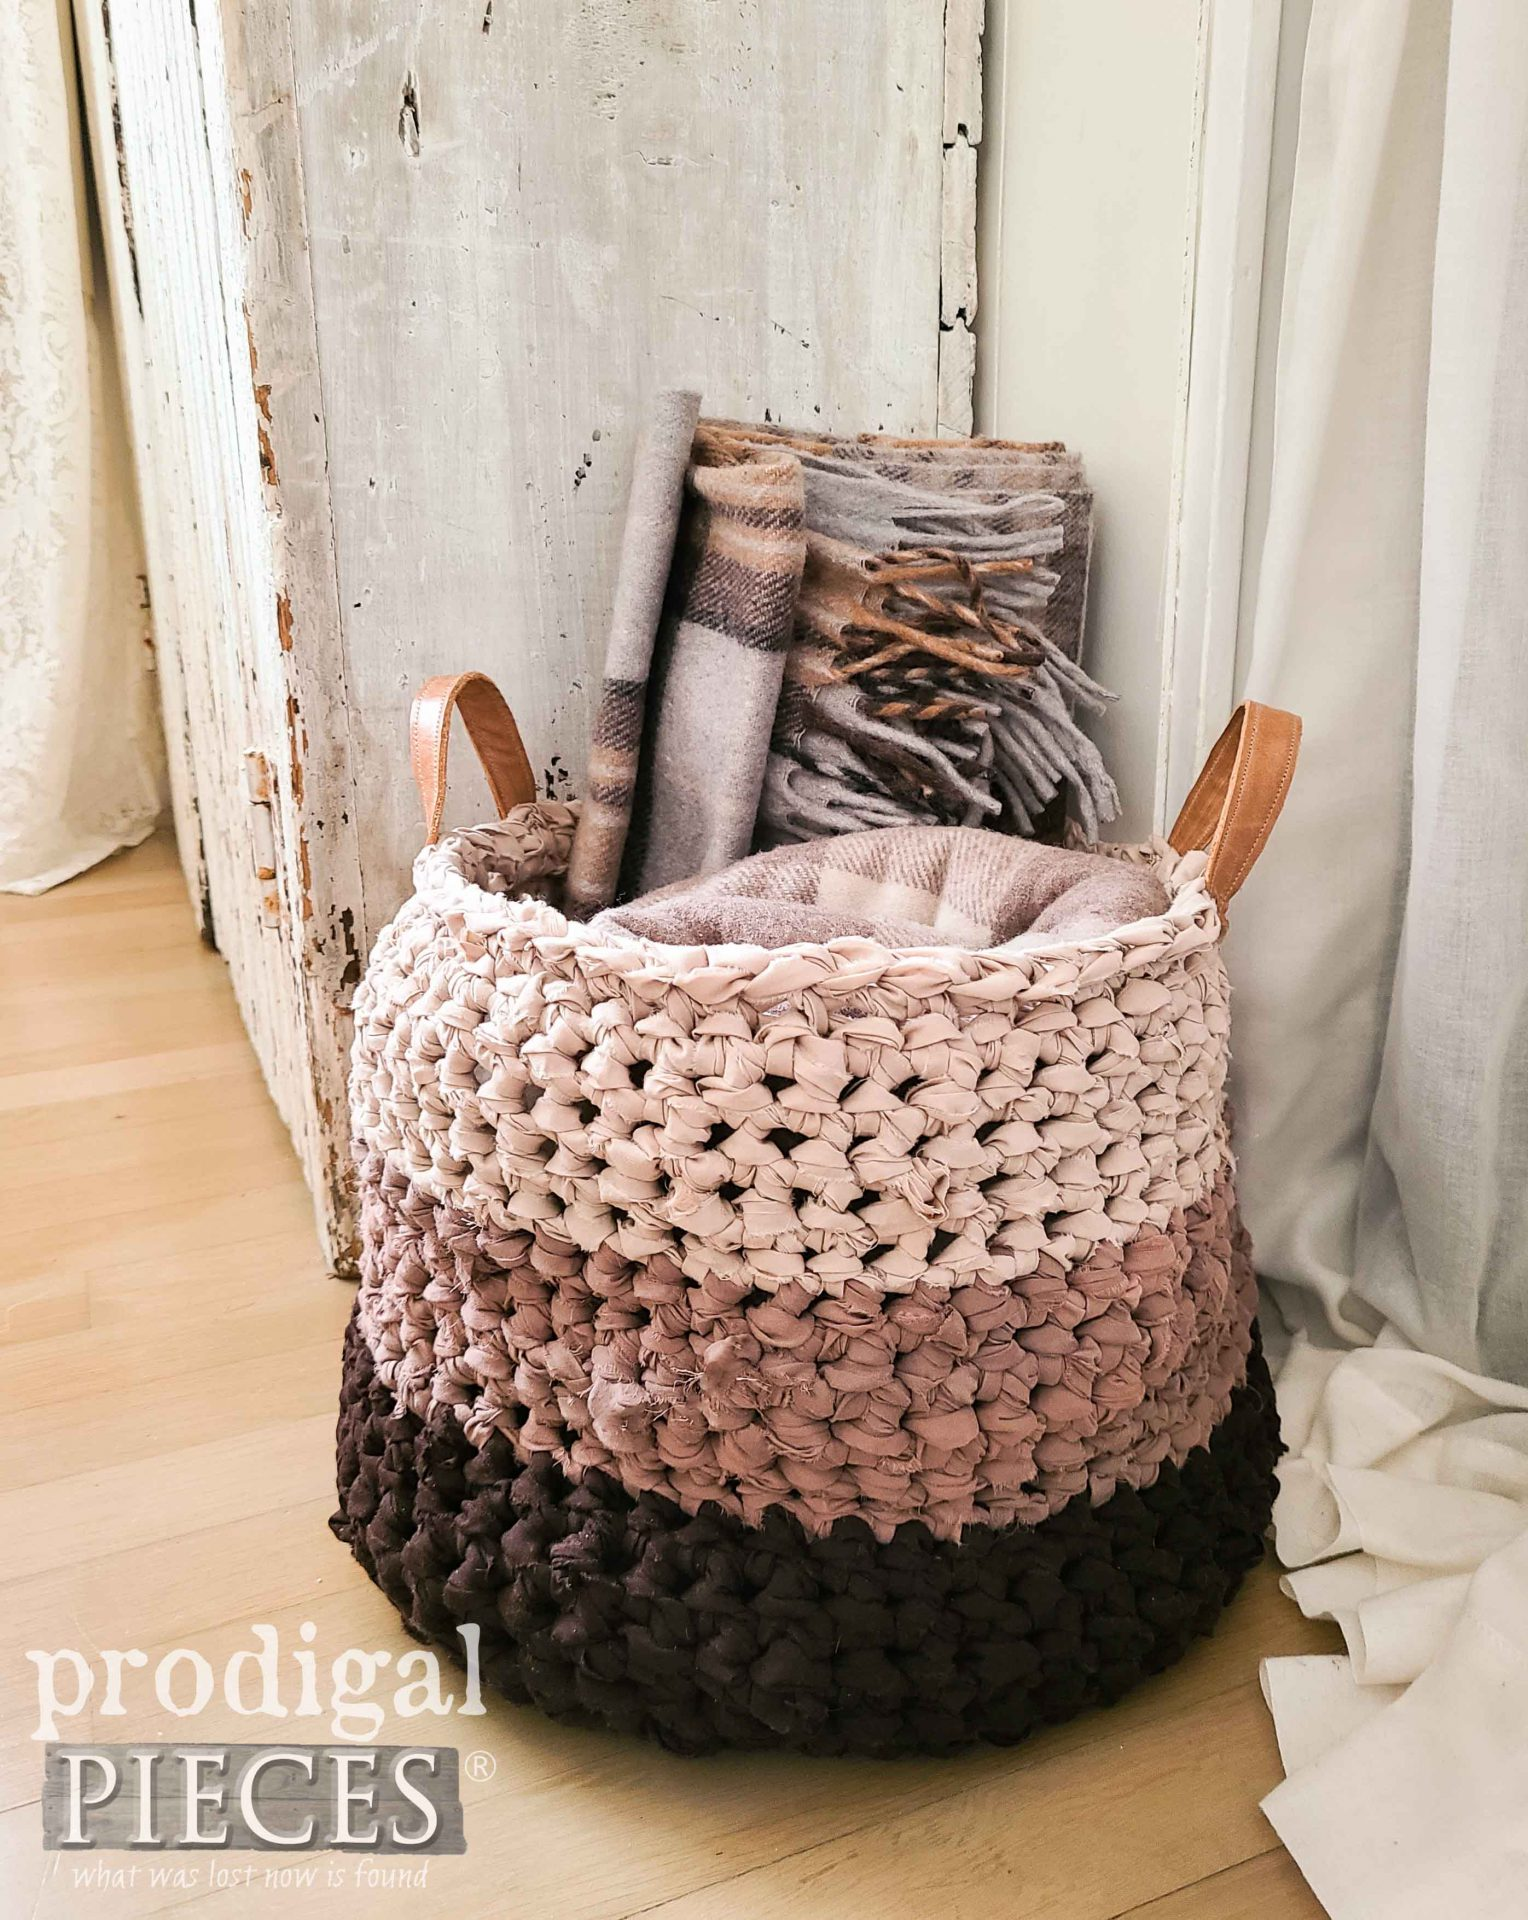 Handmade Crochet Basket Made from Upcycled Bed Sheets by Larissa of Prodigal Pieces | prodigalpieces.com #prodigalpieces #handmade #crochet #diy #home #farmhouse #homedecor